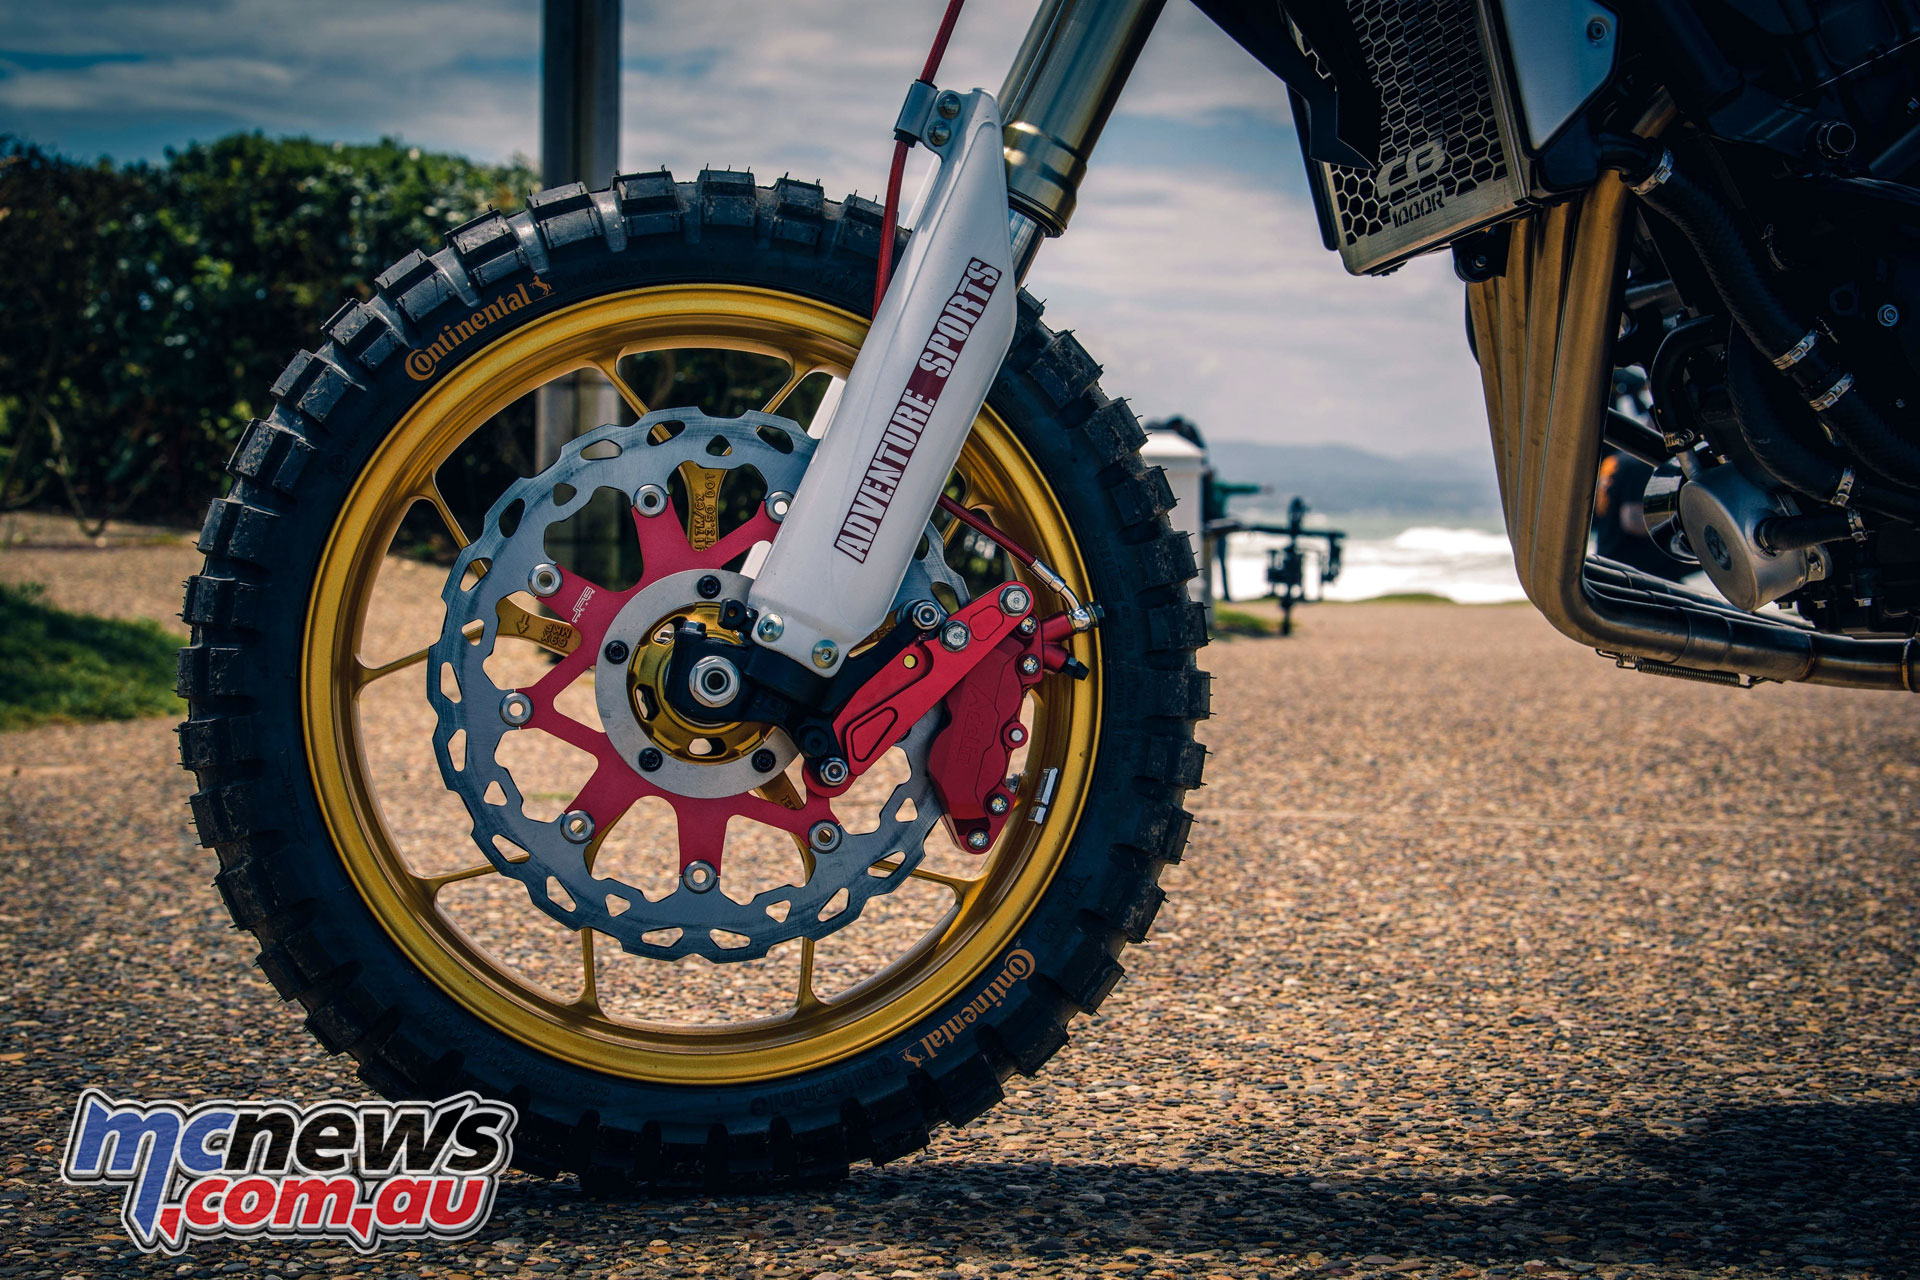 Wheels Waves Honda Africa Four CRFR